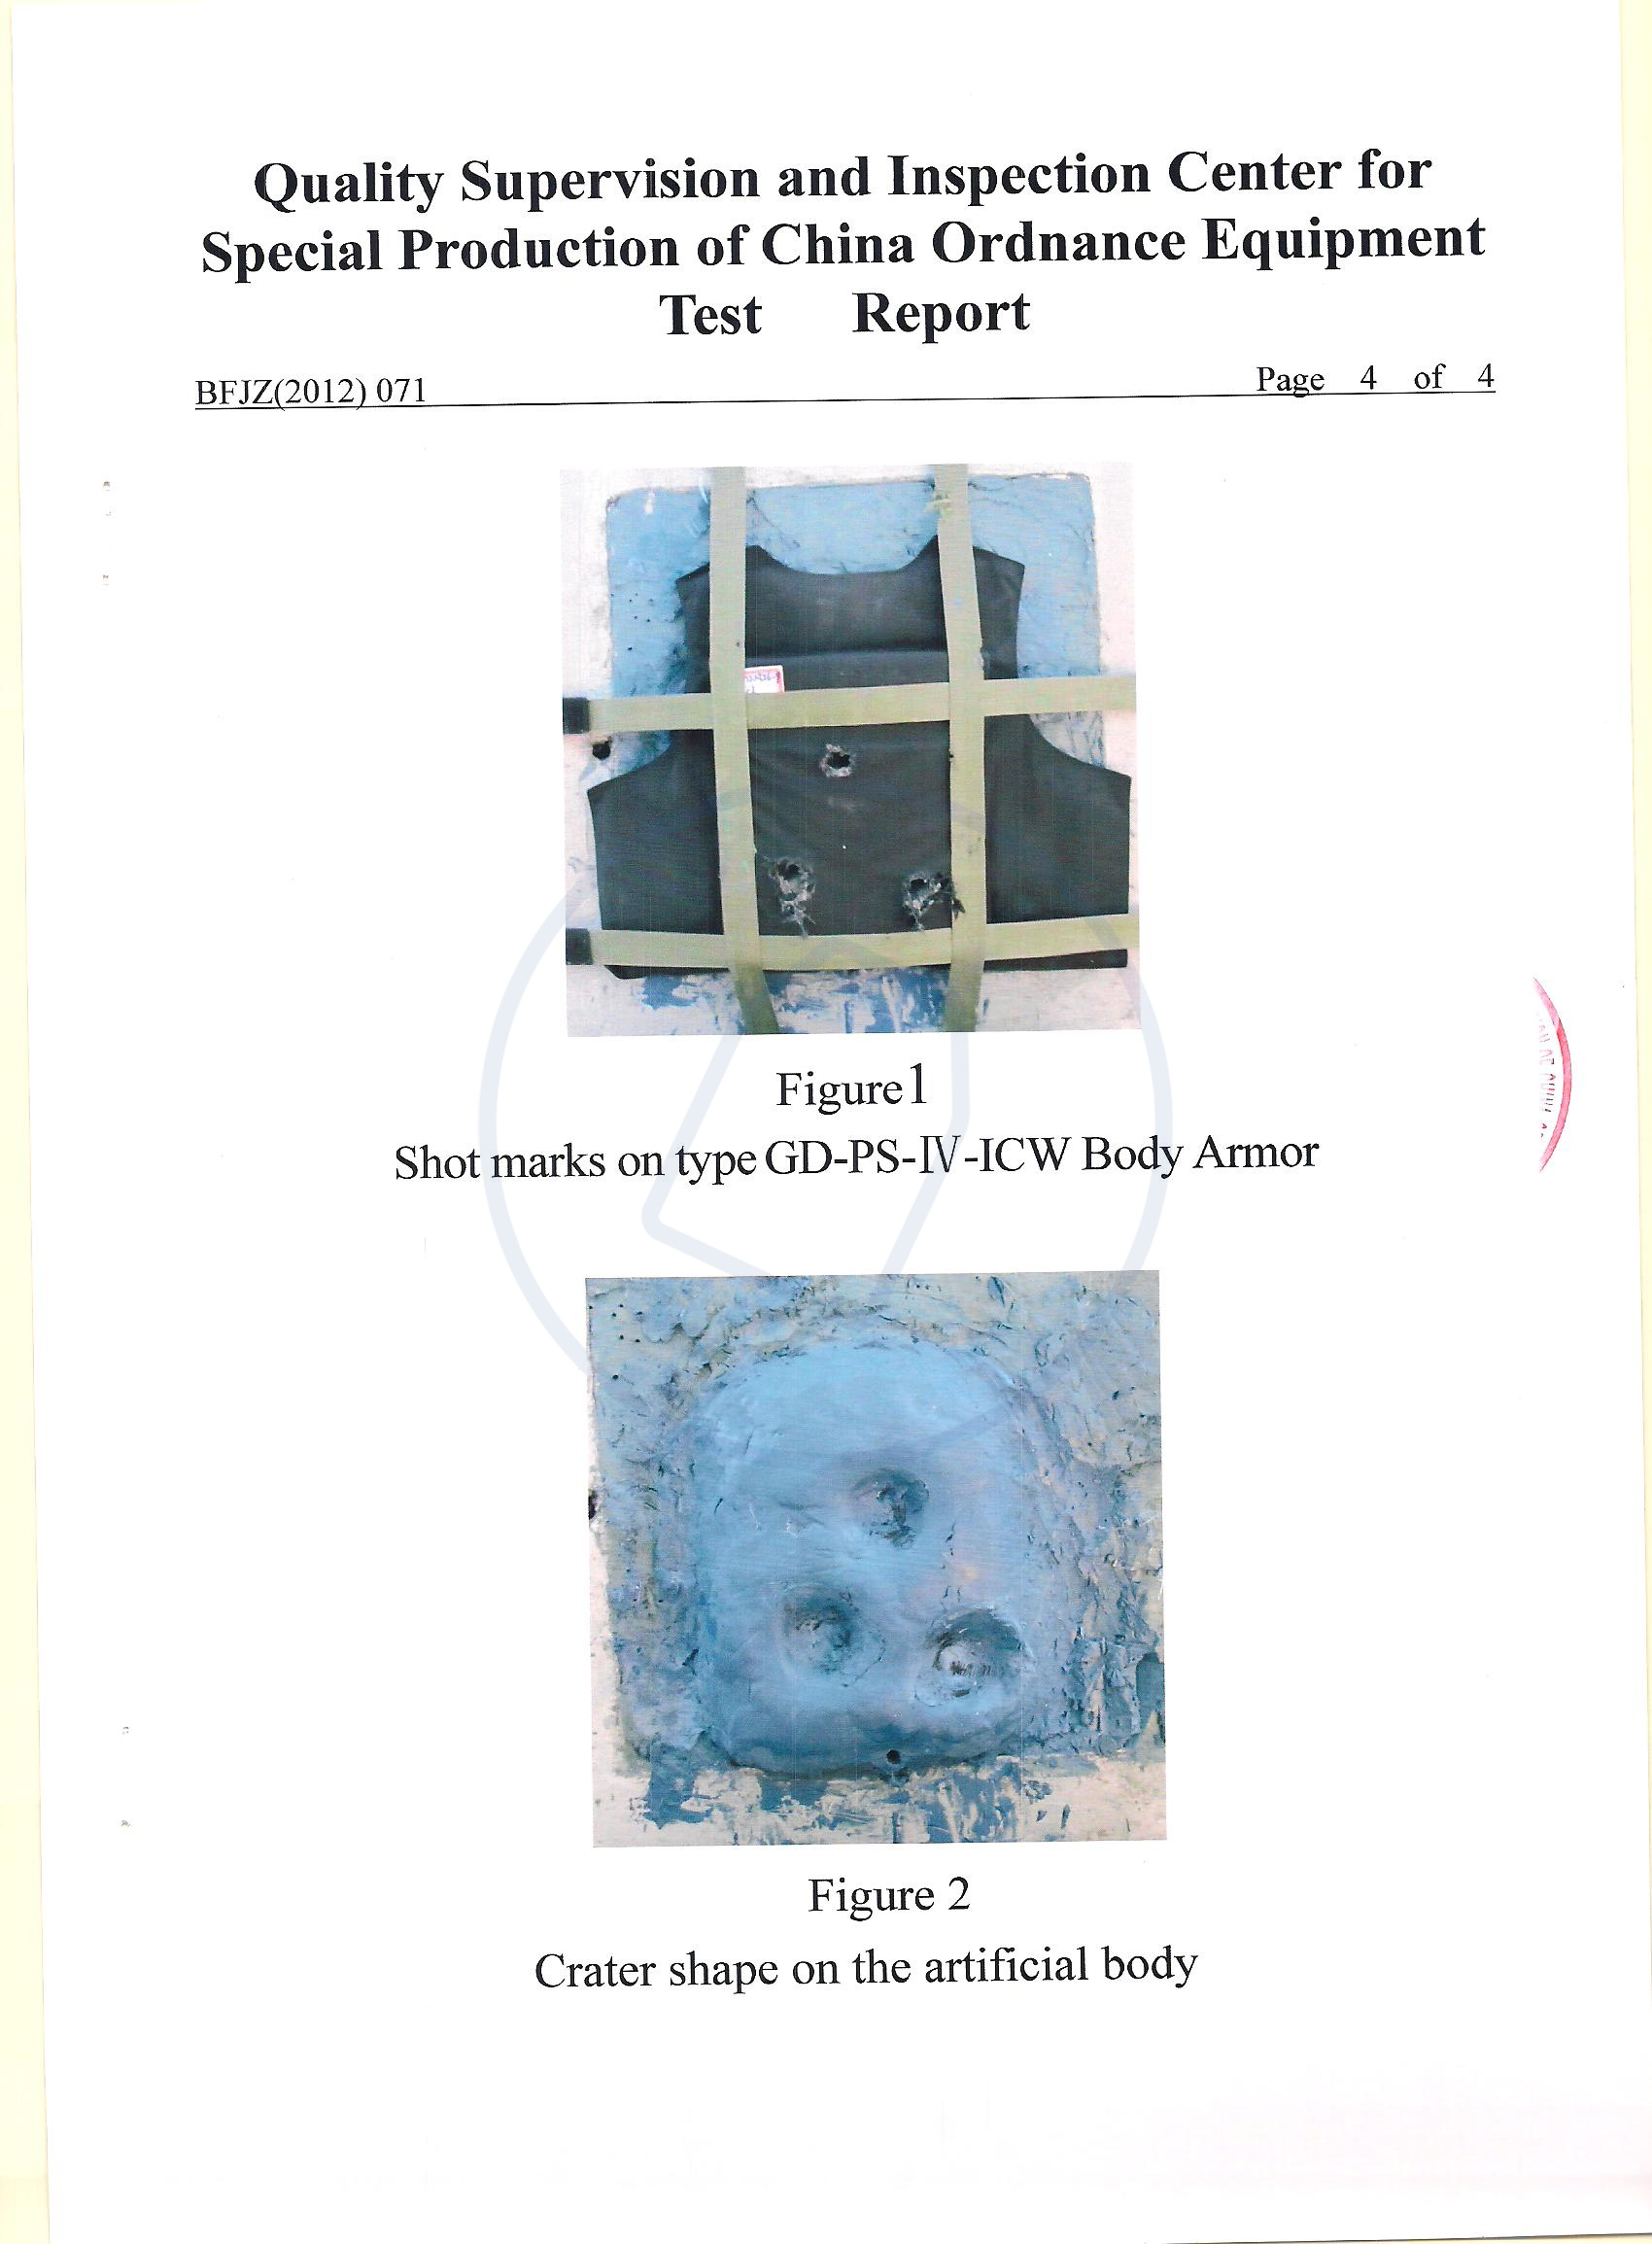 test data of psiv icw in iiia 9mm vest fire with 7.62x53mm ap (6)